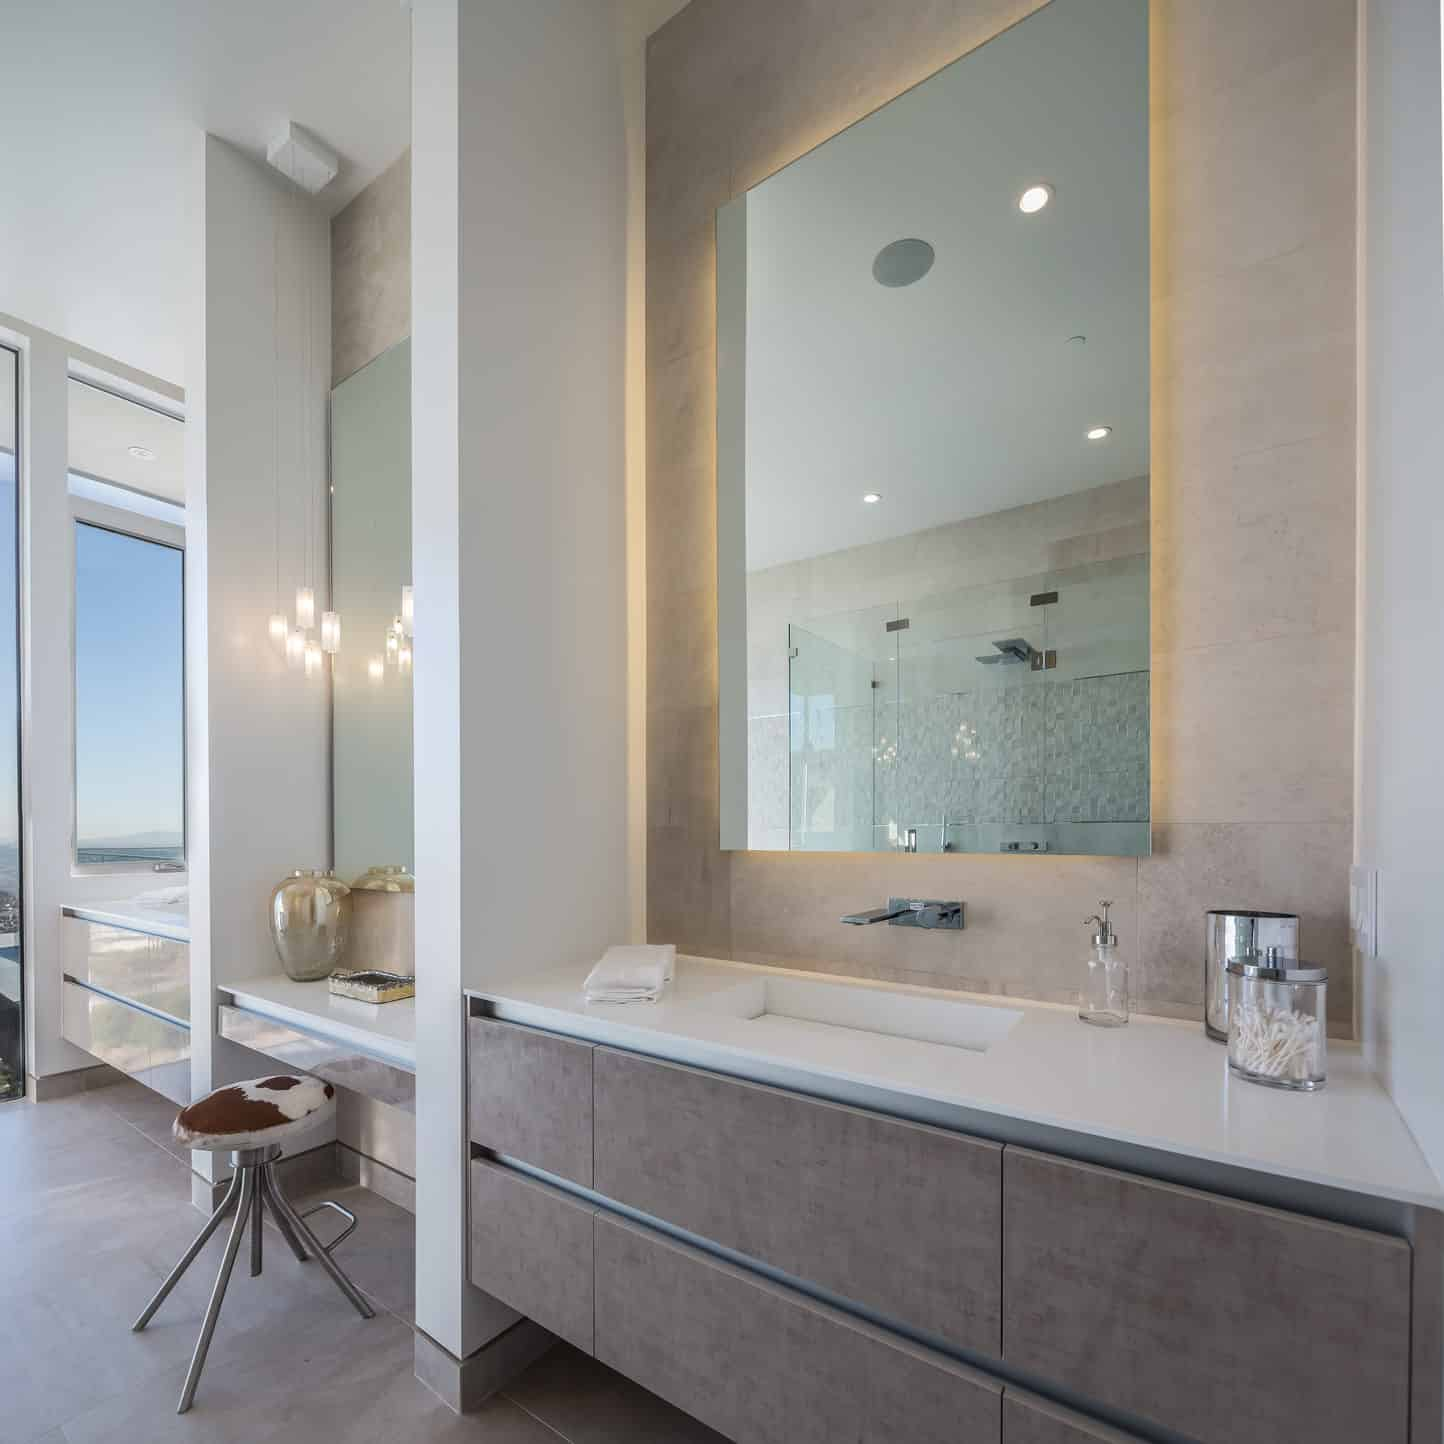 Architecture-Contemporary-Residence-Noesis Group-15-1 Kindesign